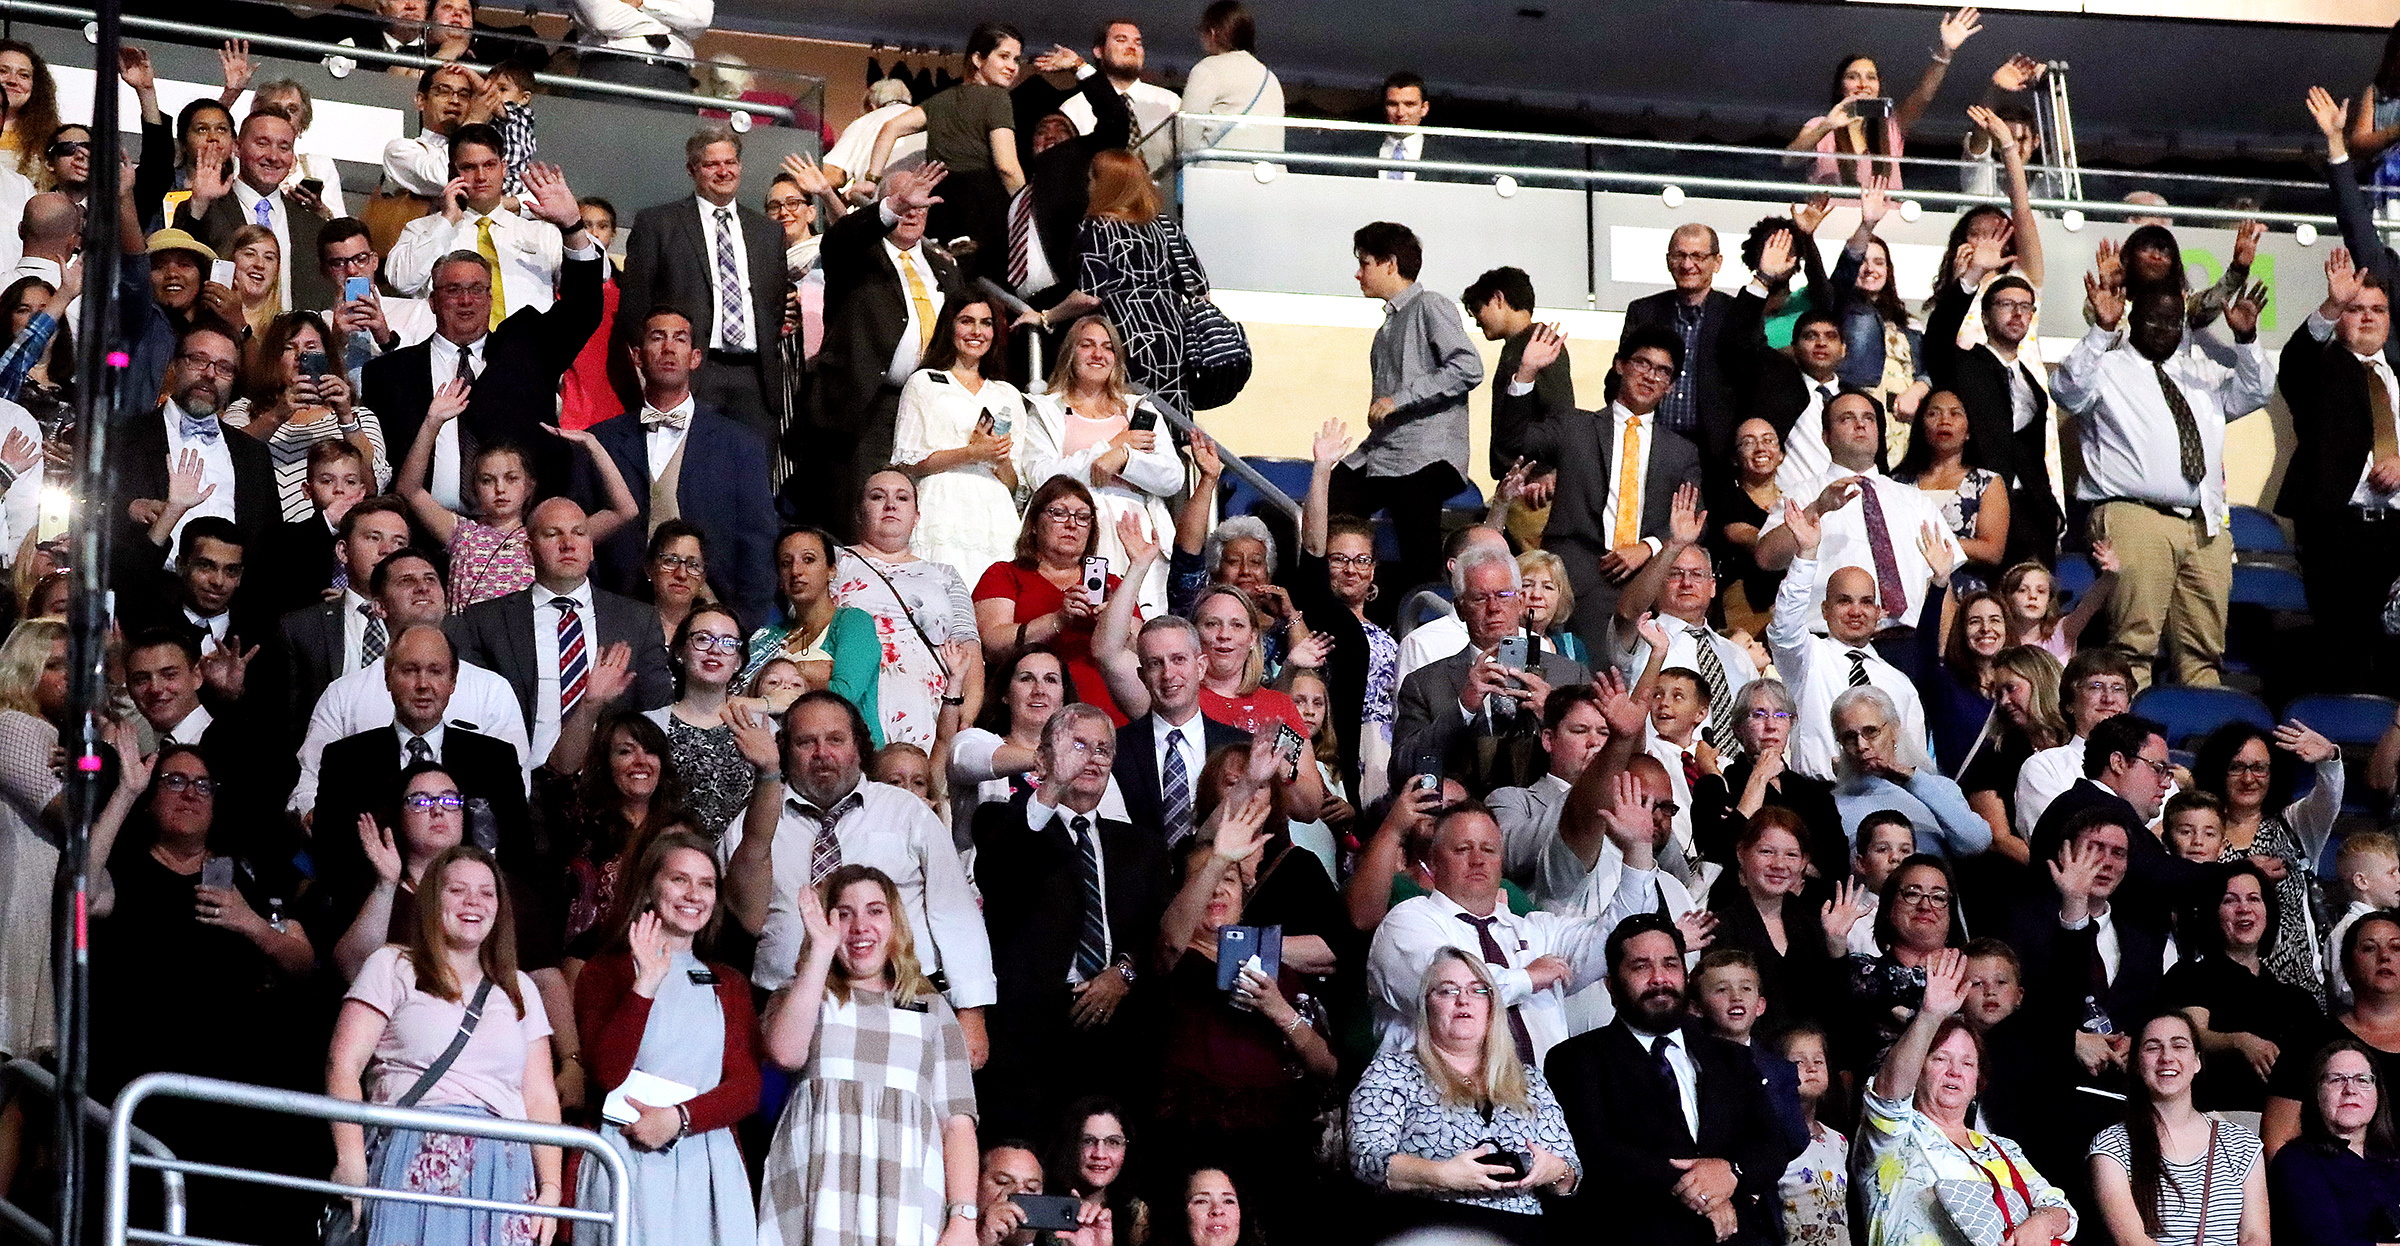 Attendees wave at President Russell M. Nelson, Sister Wendy Nelson and other leaders following the June 9, 2019, devotional at the Amway Center in Orlando, Florida.